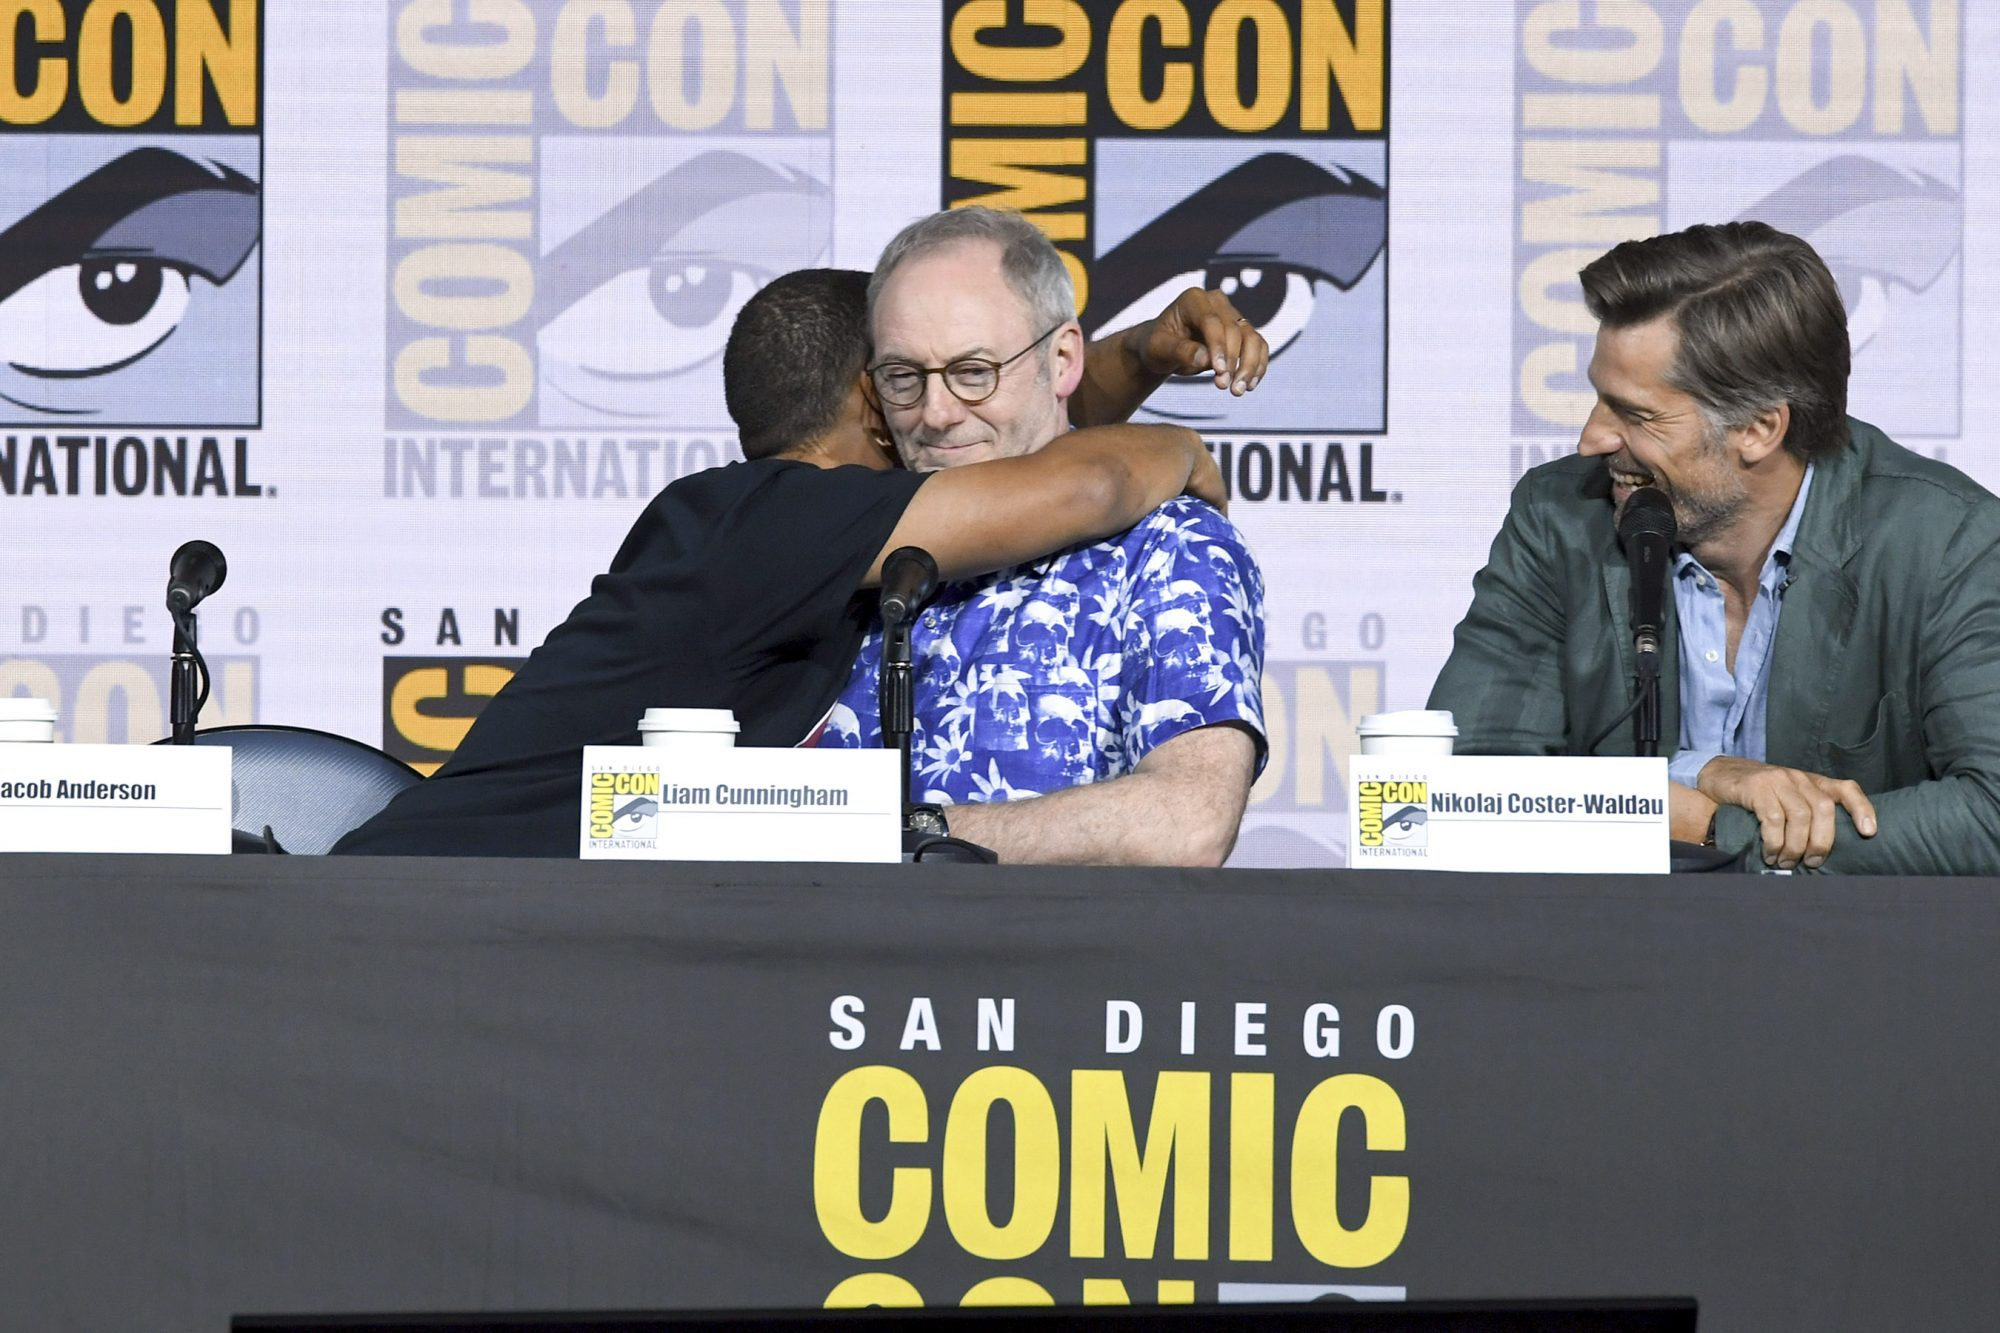 """SAN DIEGO, CALIFORNIA - JULY 19: (L-R) Maisie Williams, Jacob Anderson, Liam Cunningham, and Nikolaj Coster-Waldau speak at the """"Game Of Thrones"""" Panel And Q&A during 2019 Comic-Con International at San Diego Convention Center on July 19, 2019 in San Diego, California. (Photo by Kevin Winter/Getty Images)"""